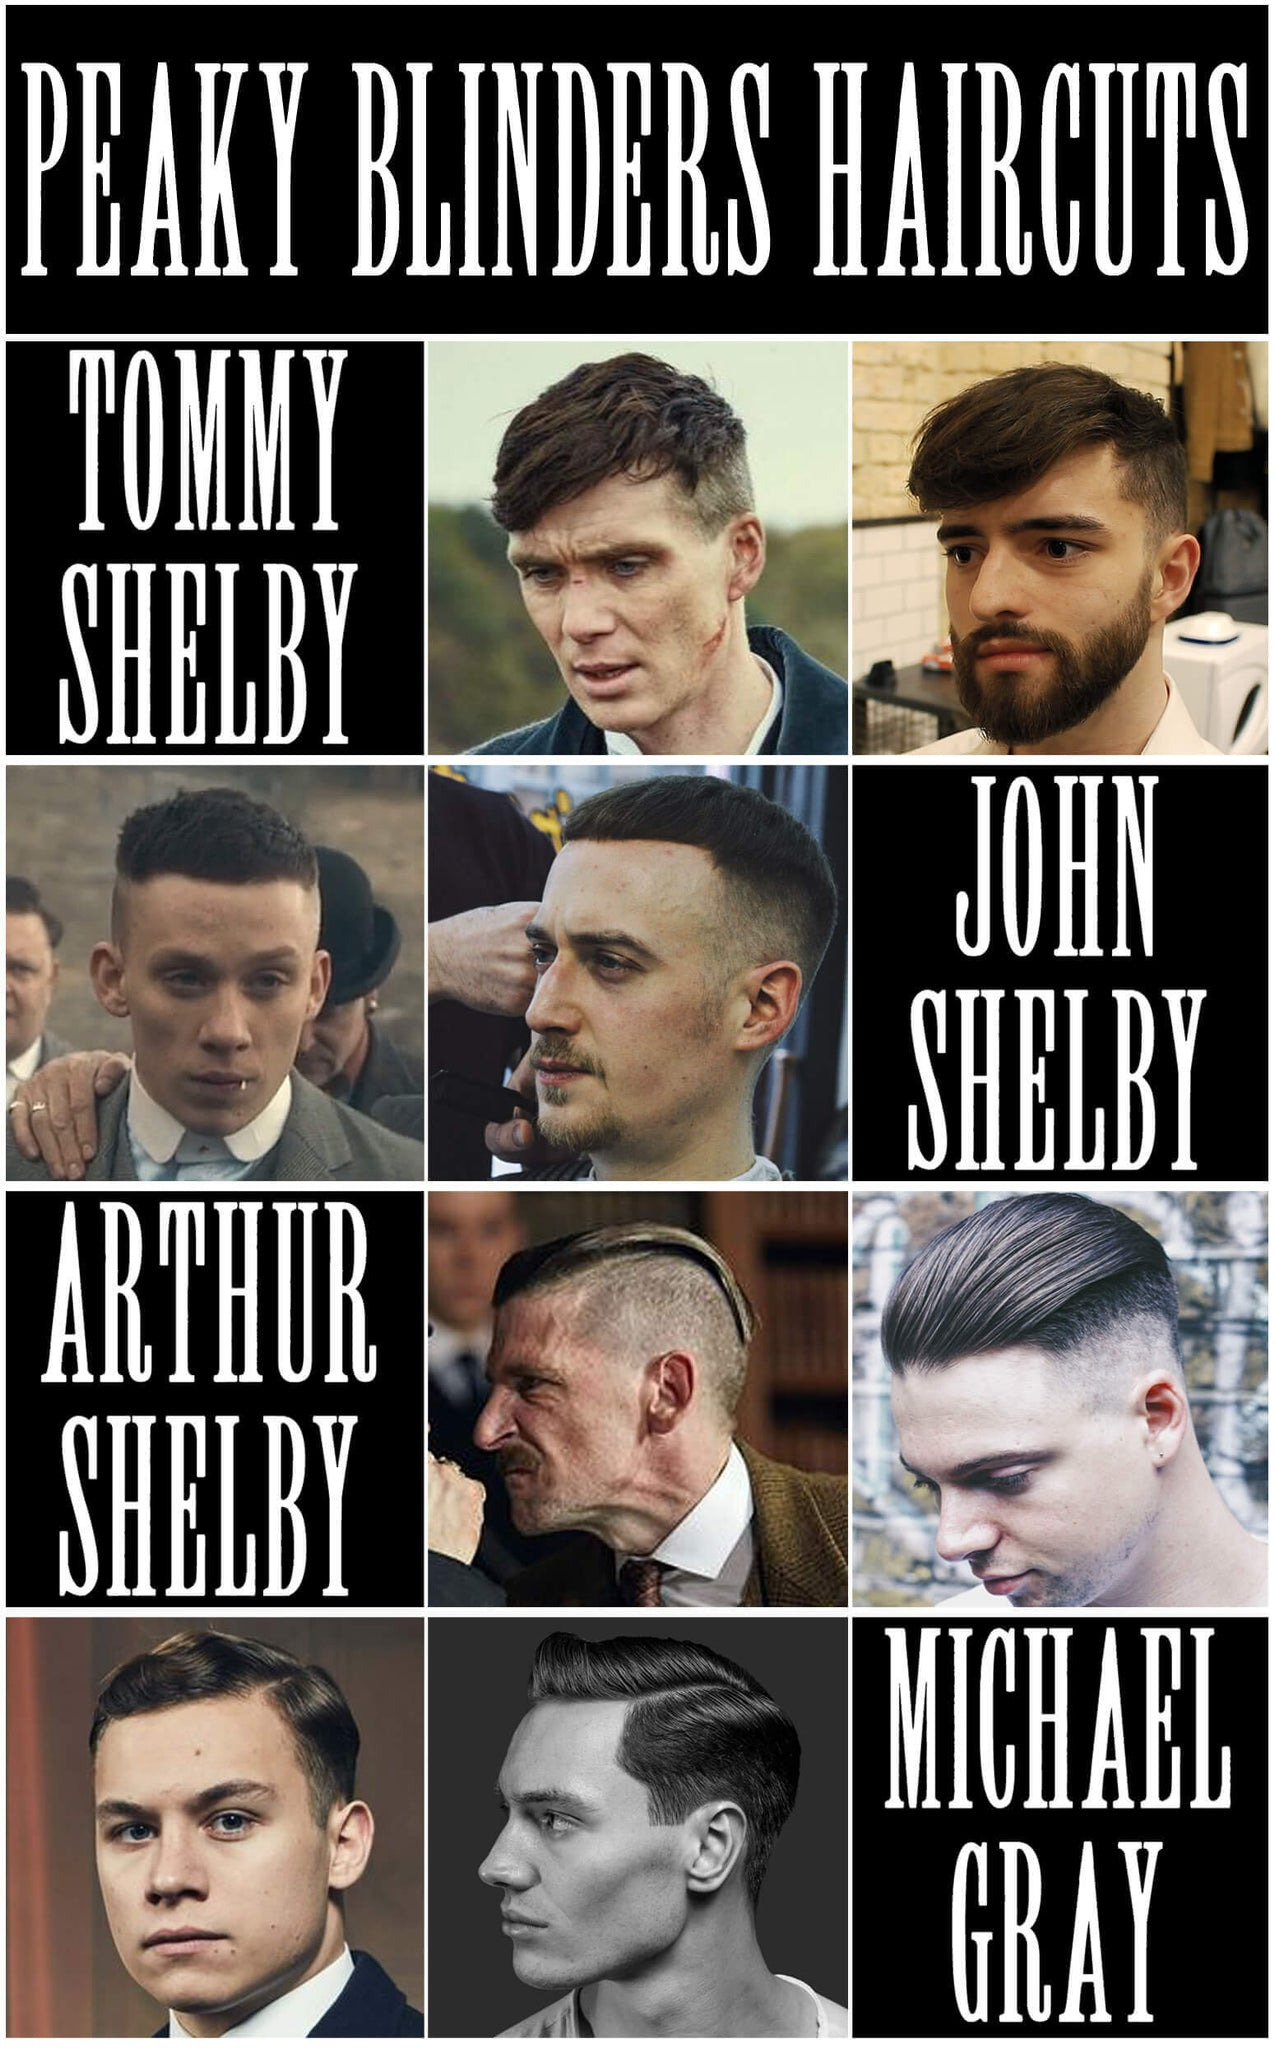 How To Get The Peaky Blinders Haircuts | Tommy Shelby, Arthur Shelby, John Shelby, Michael Gray Peaky Blinders Hair